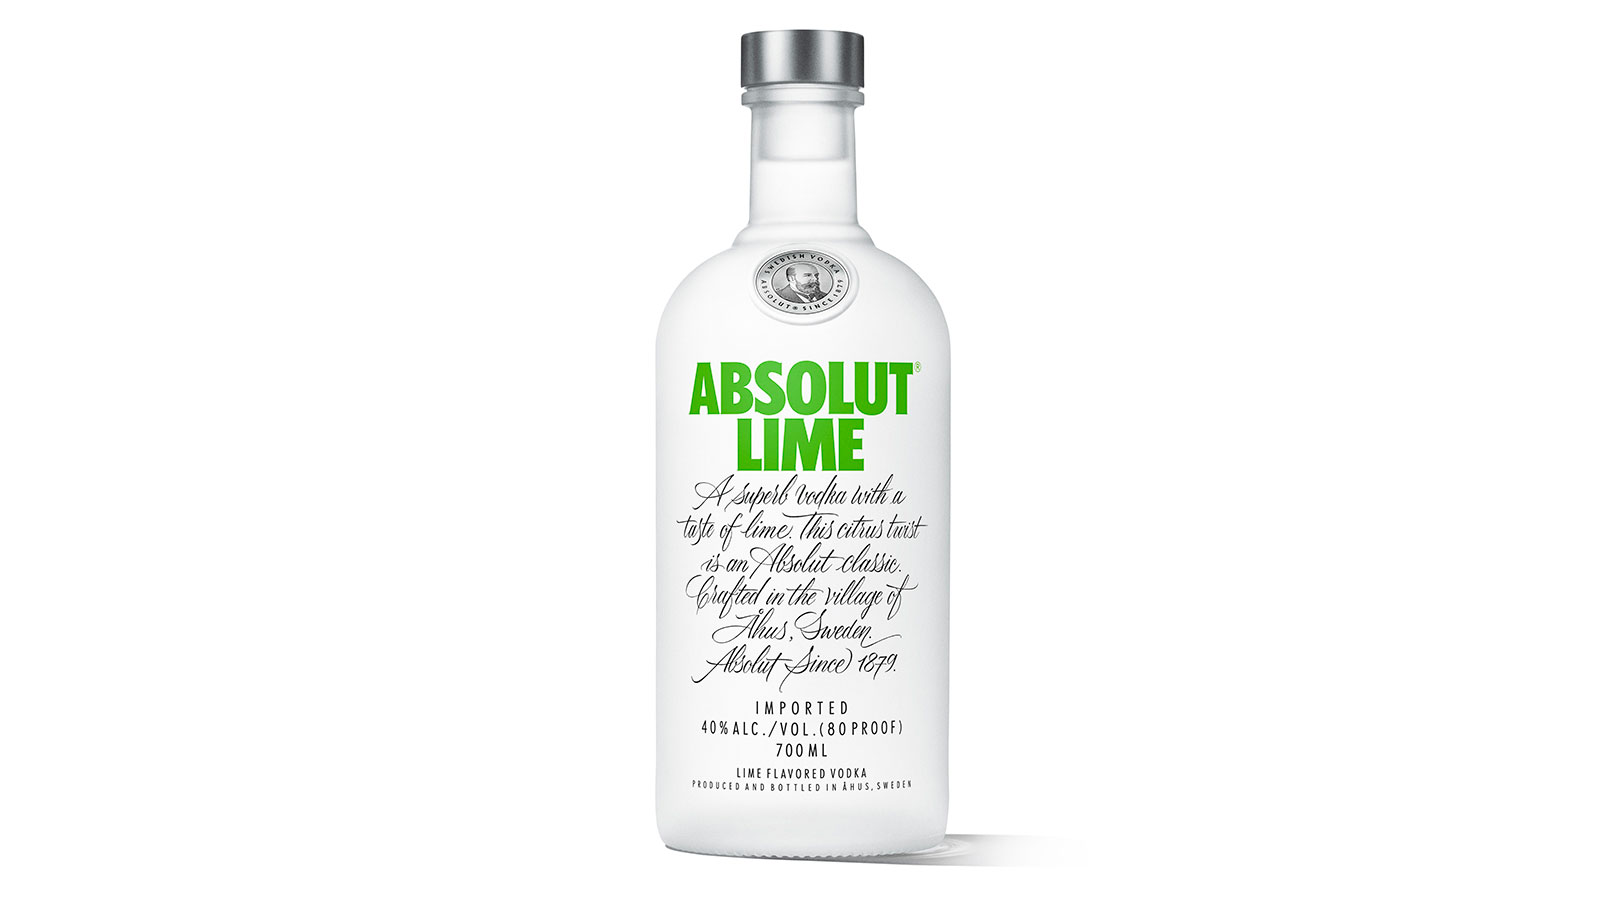 Introducing Absolut Lime, Absolut's first new flavoured vodka in four years